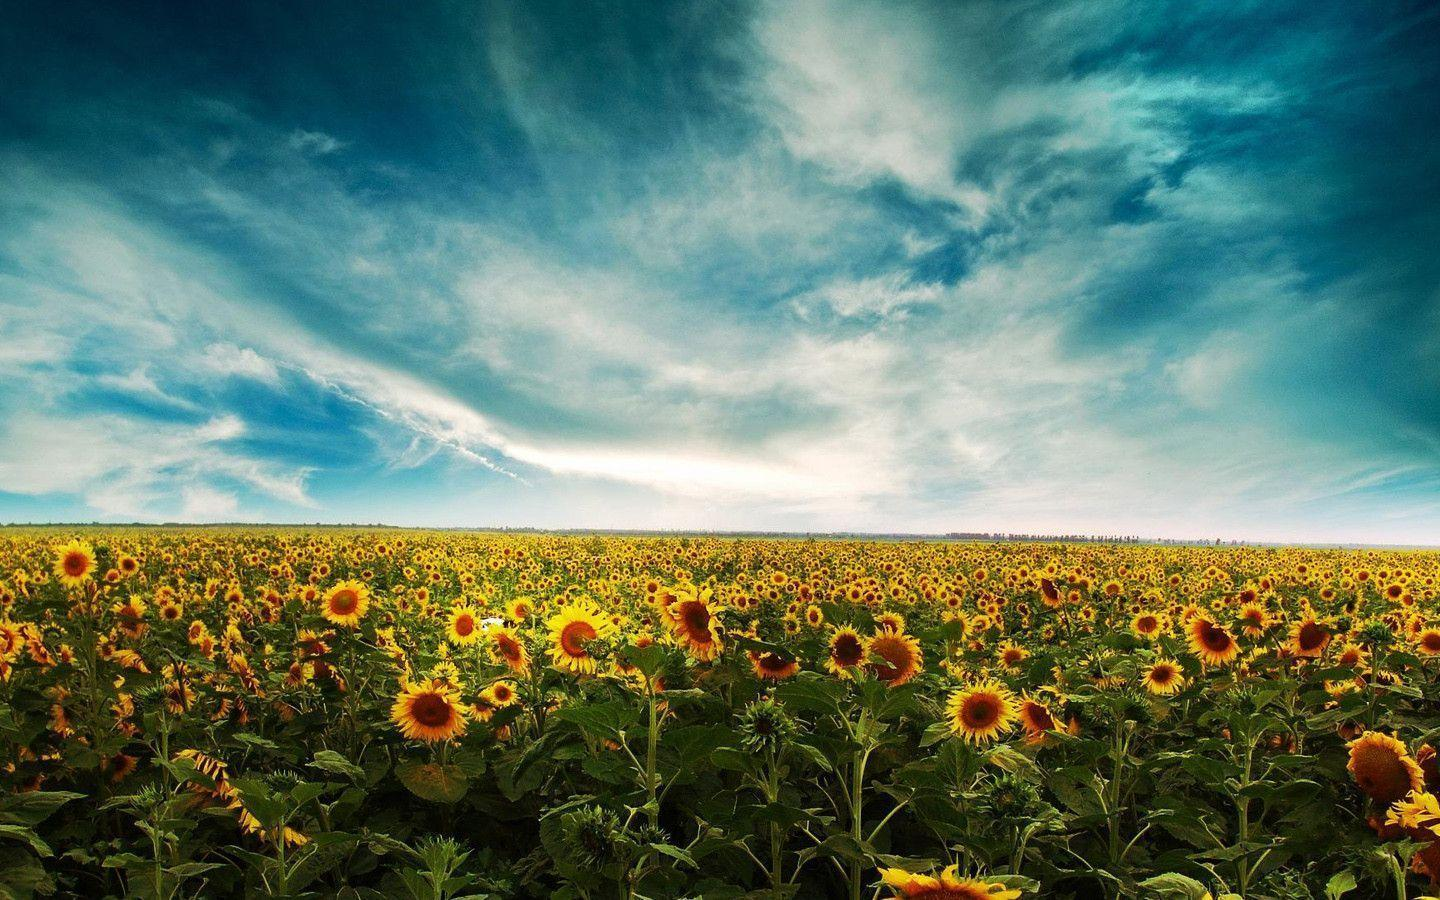 eleletsitz sunflowers tumblr background images